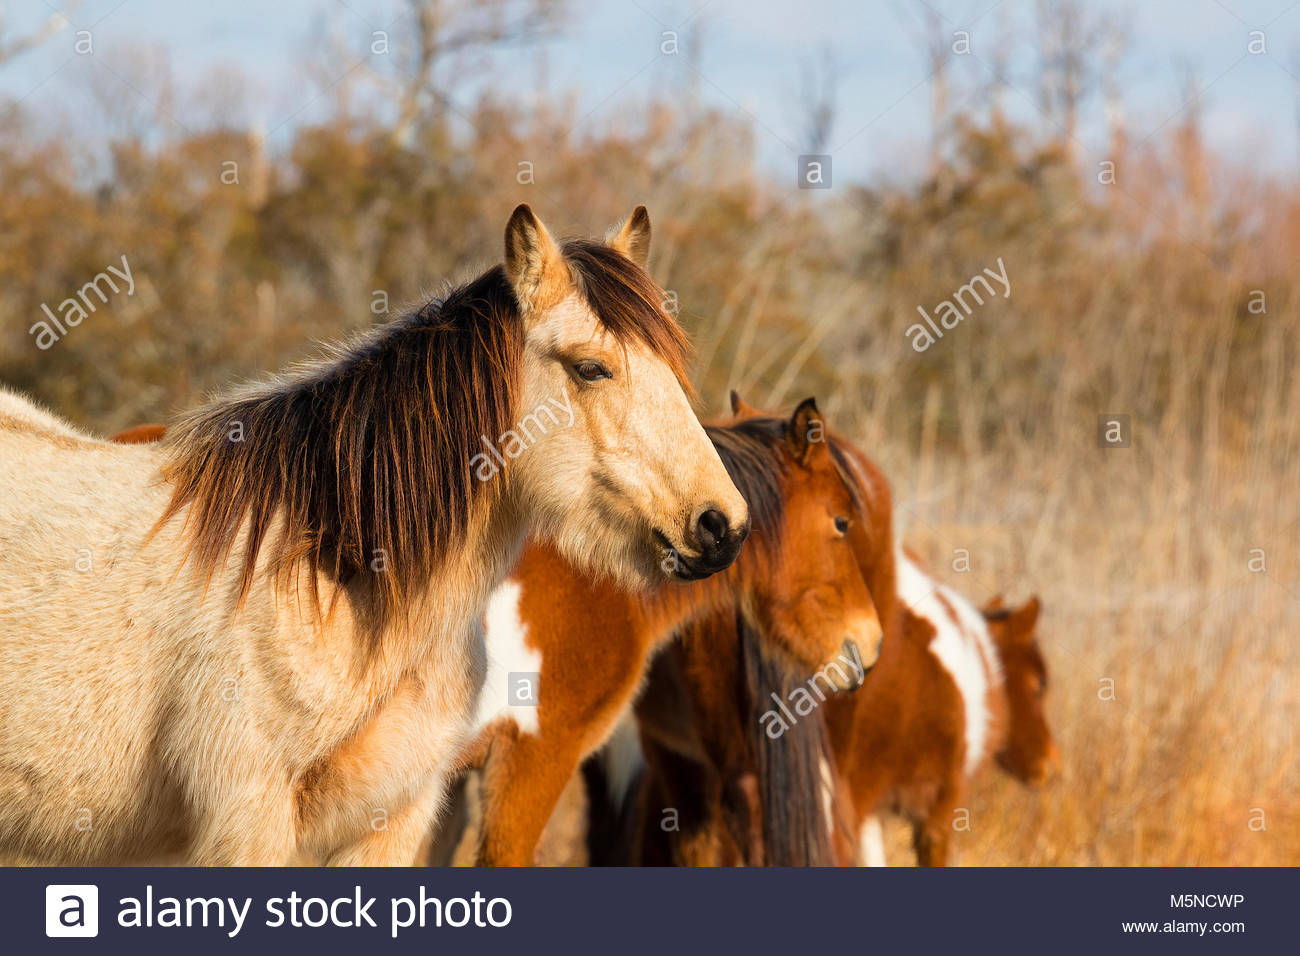 A stallion watches over several Chincoteague ponies (Equus caballus), also known as Assateague horses, in a marsh - Stock Image